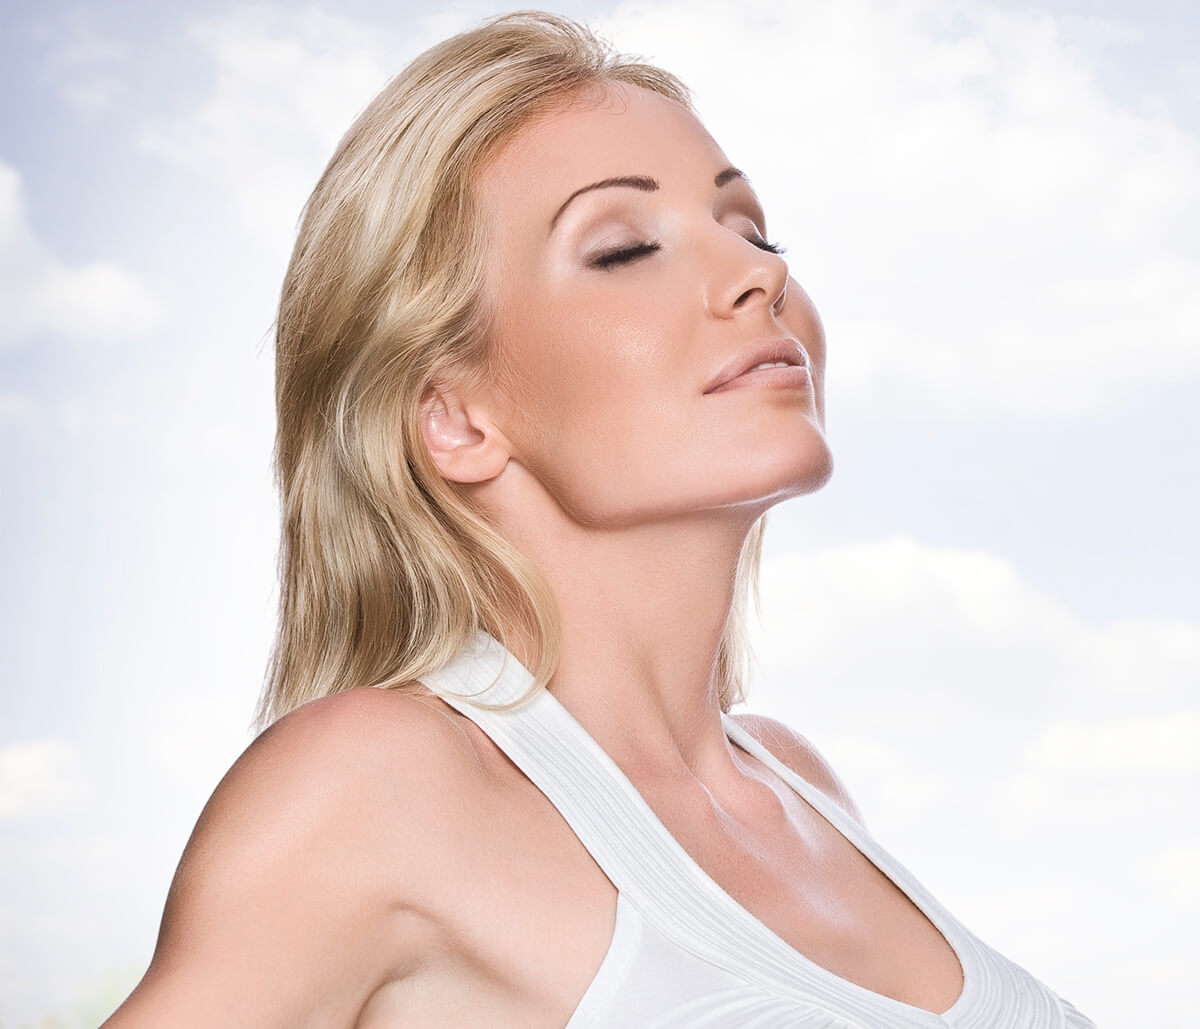 Learn more about IPL photofacial treatment for clearer skin with Cobble Hill, NY area doctor